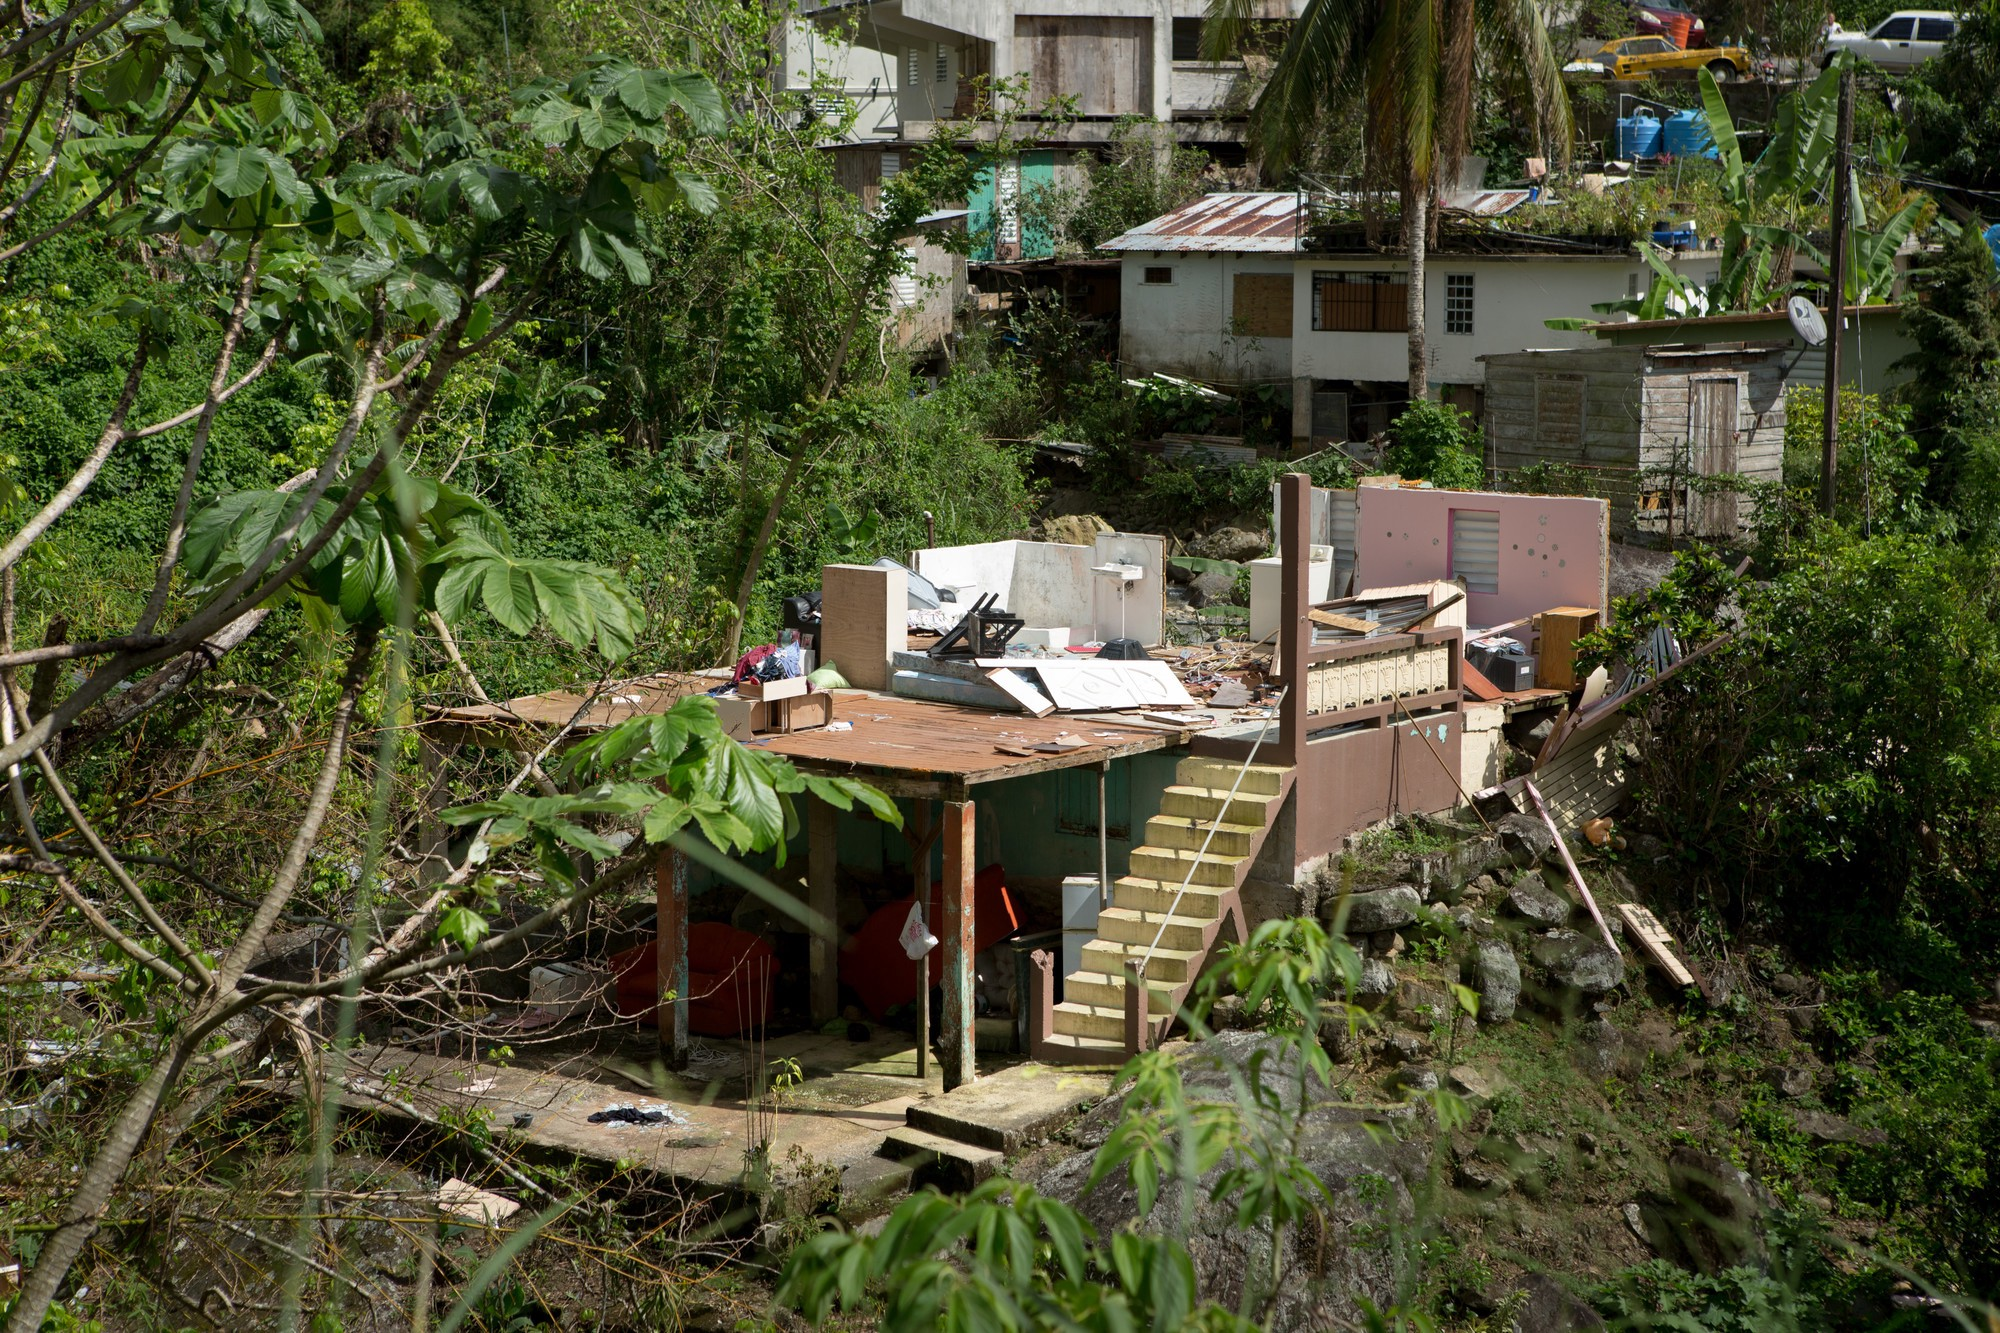 Puerto Rico Continues To Recover From Hurricane Maria By Lwr Media The Lwr And Ima Newswire Medium